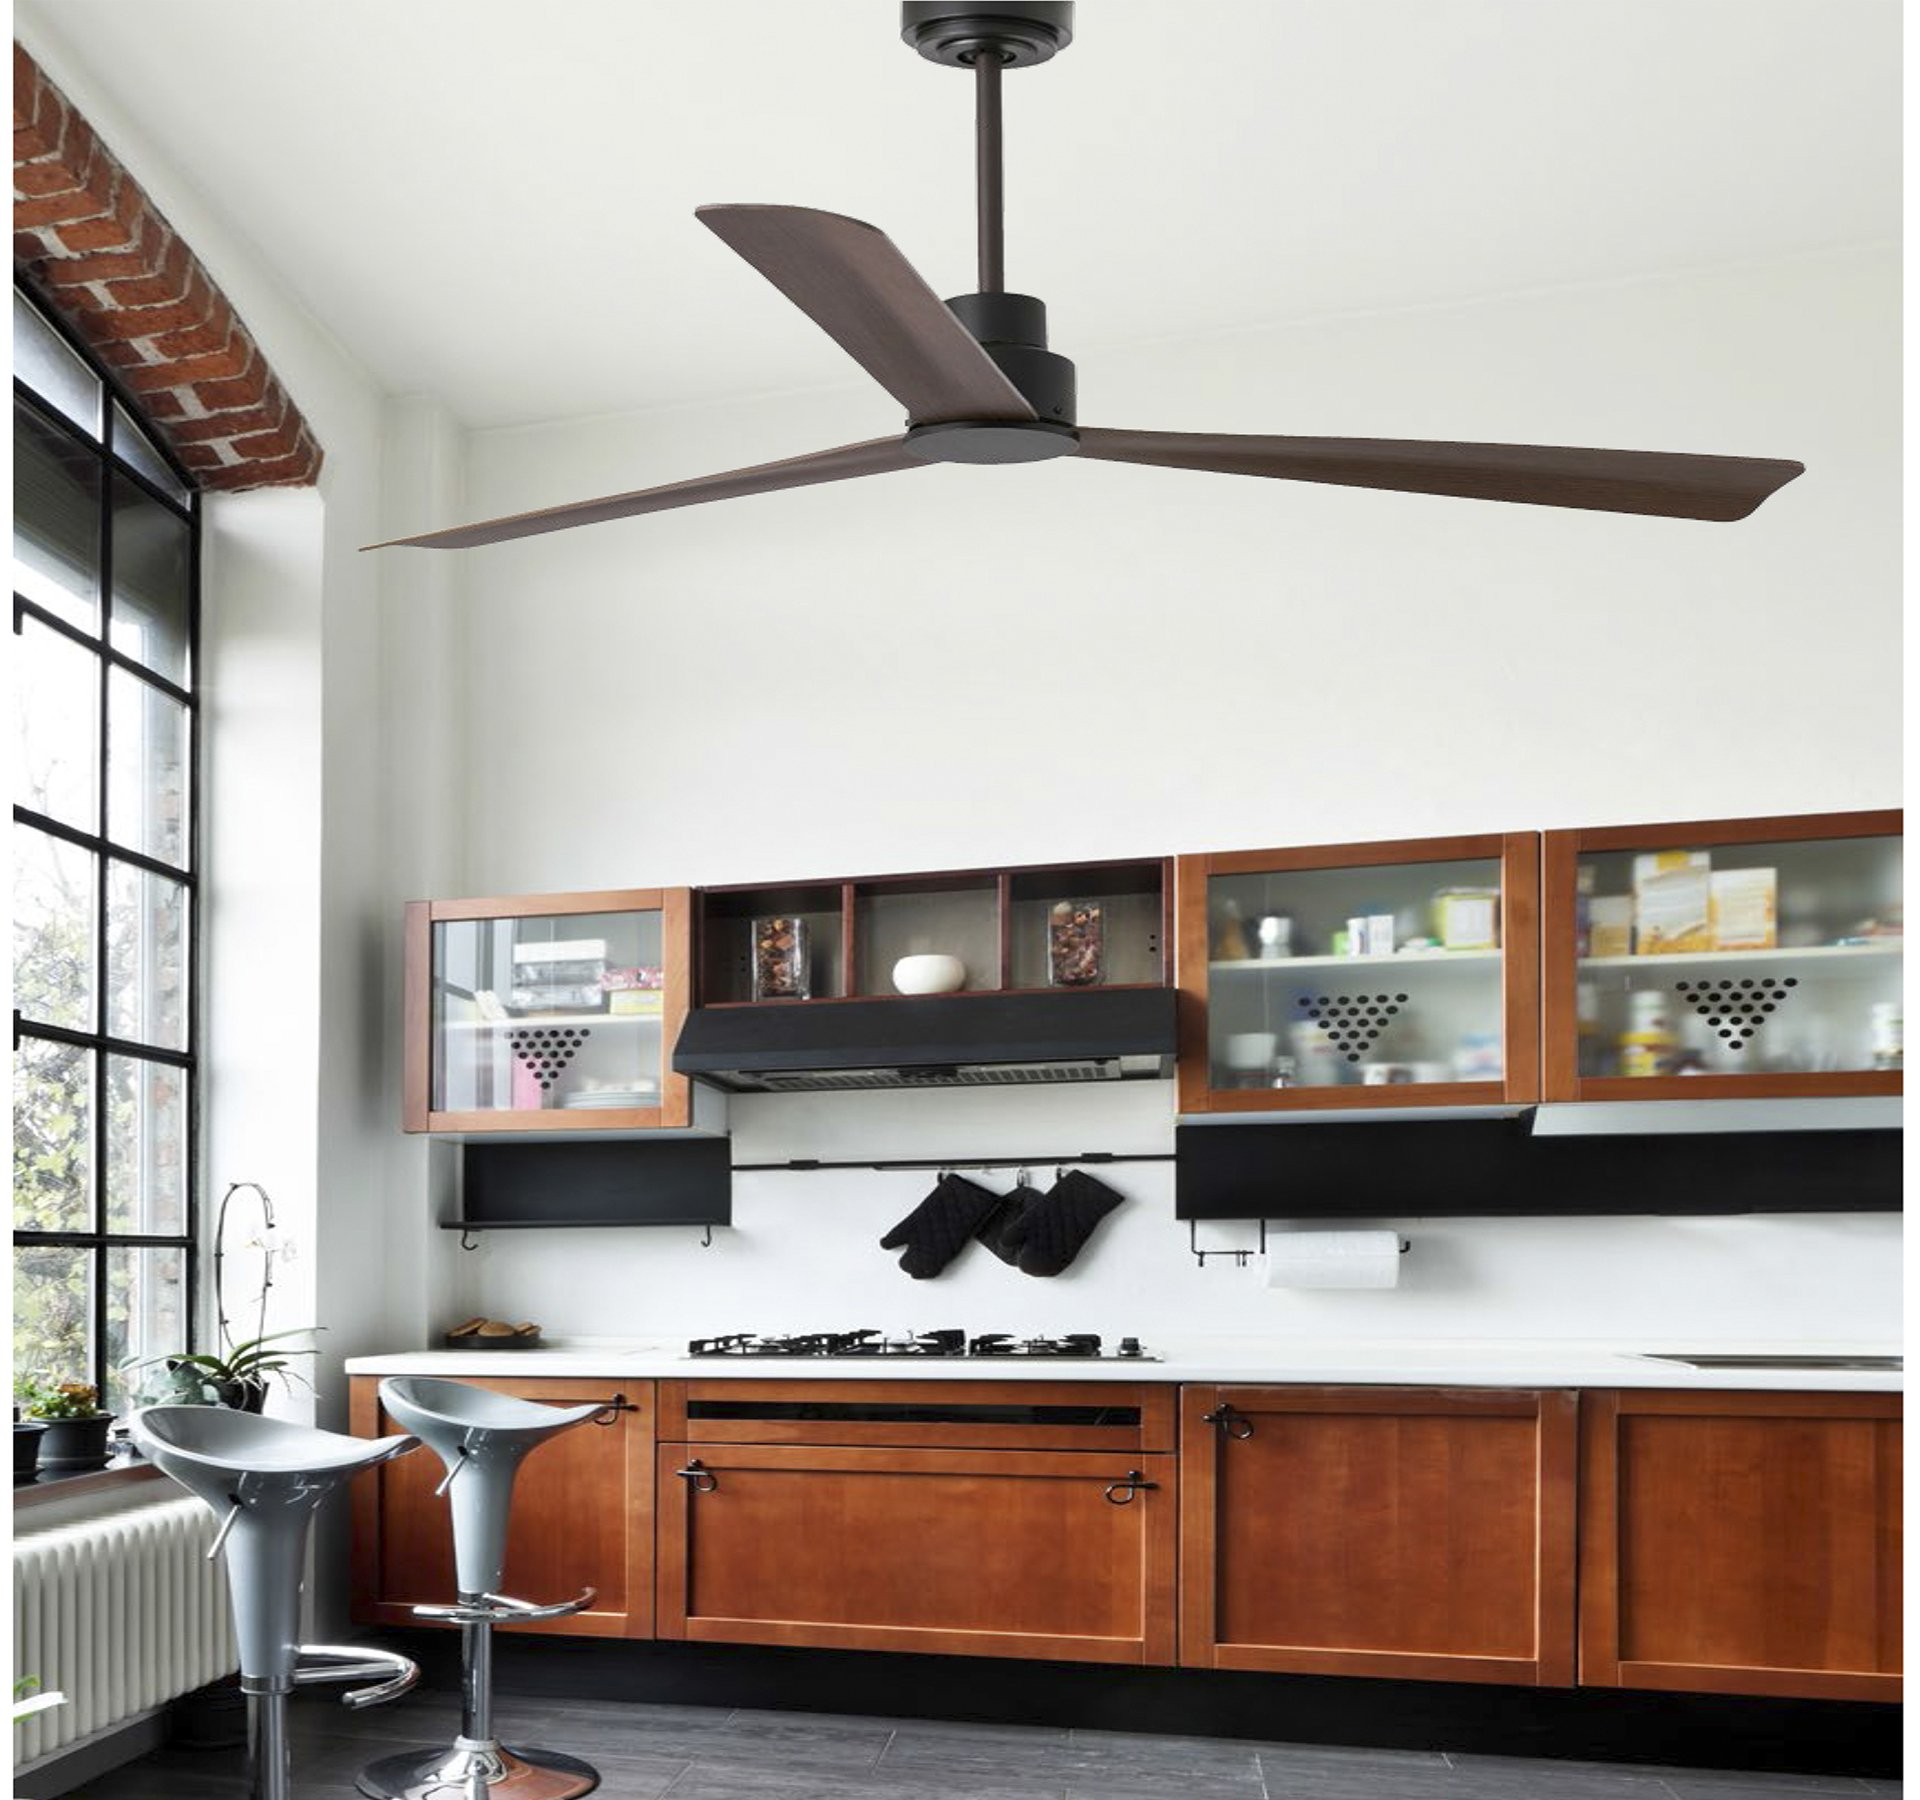 More information of Nassau ceiling fan - Faro